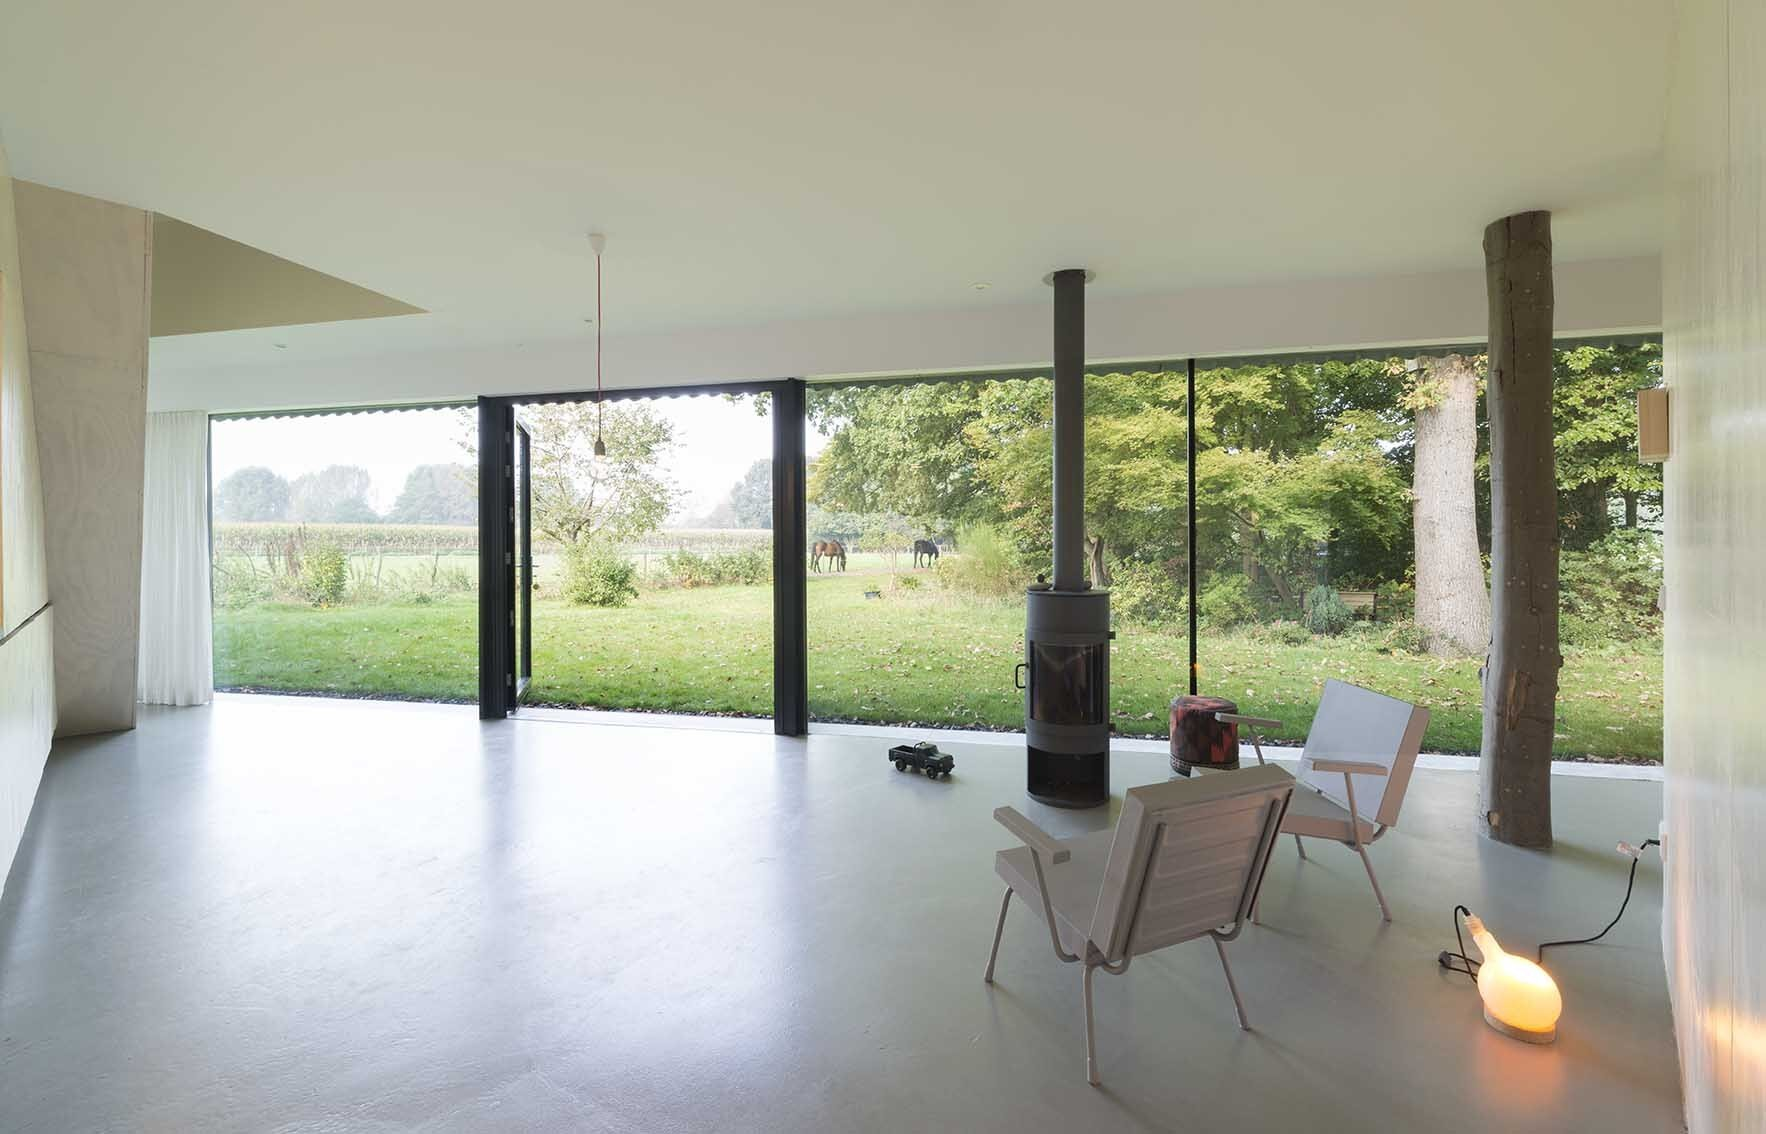 House in Almen - Barend Koolhaas - The Netherlands - Living Room Windows - Humble Homes